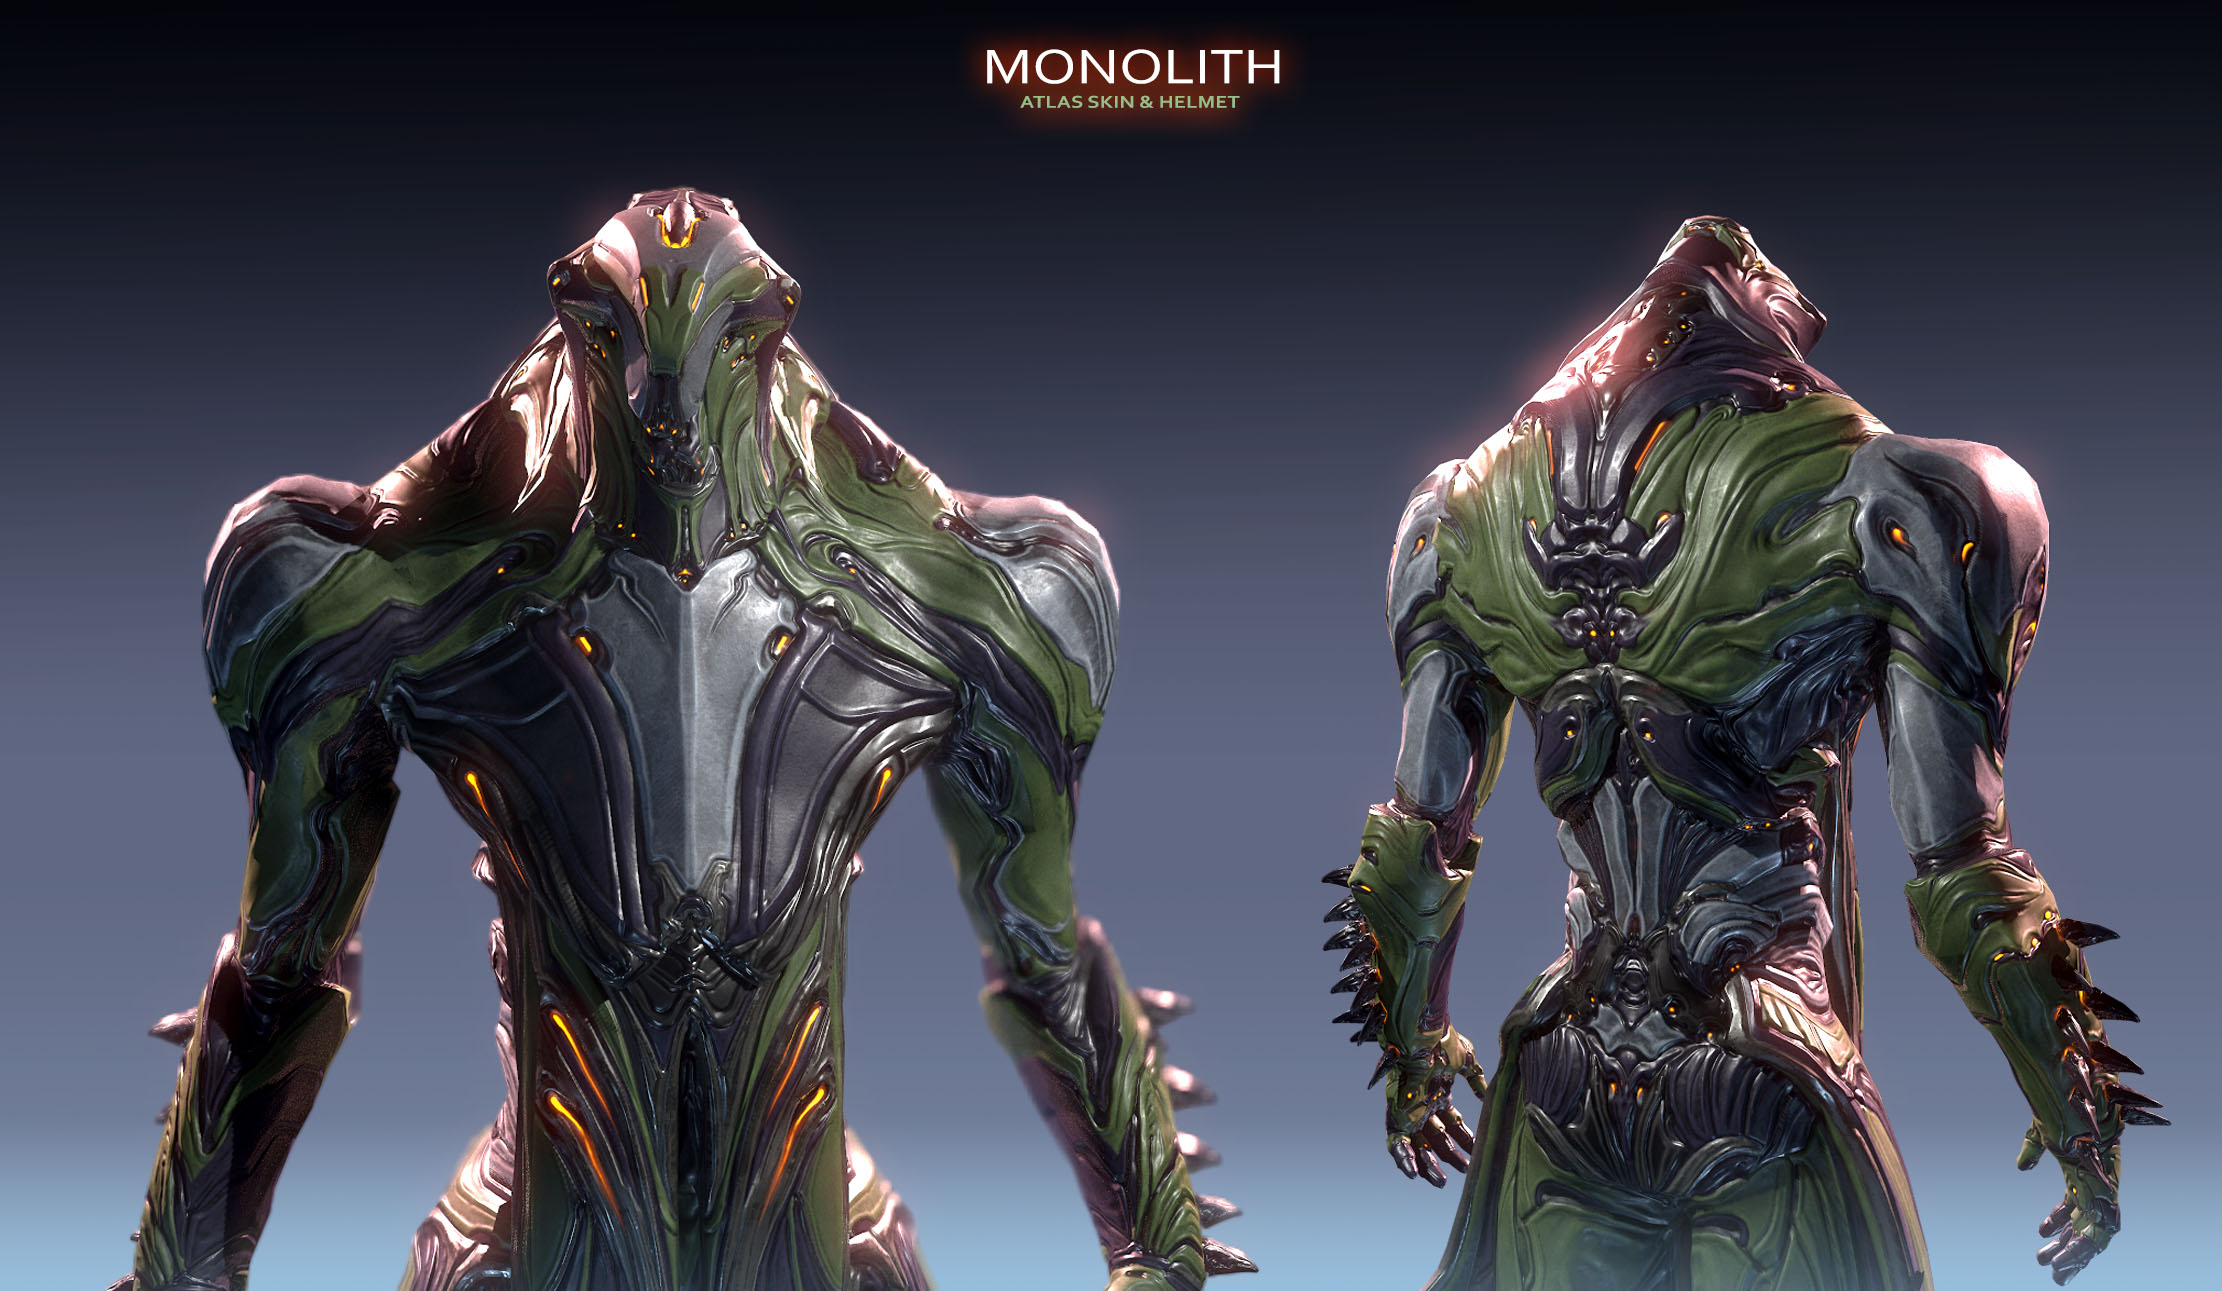 Steam Workshop Atlas Monolith Skin Helmet As a prime warframe, atlas prime possesses a special passive ability where contact with an orokin void death orb will make them release an energy tectonic fracture is a warframe augment mod for atlas that modifies tectonics to allow additional simultaneous walls, but sacrifices the ability to turn. steam workshop atlas monolith skin